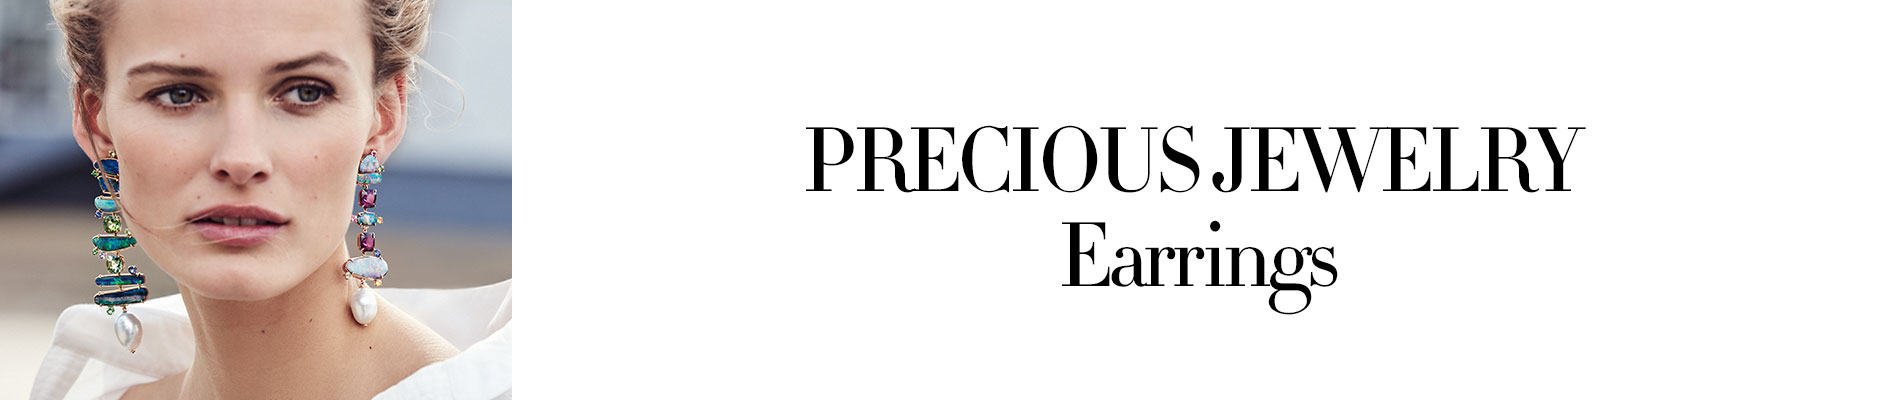 Precious Jewelry - Earrings